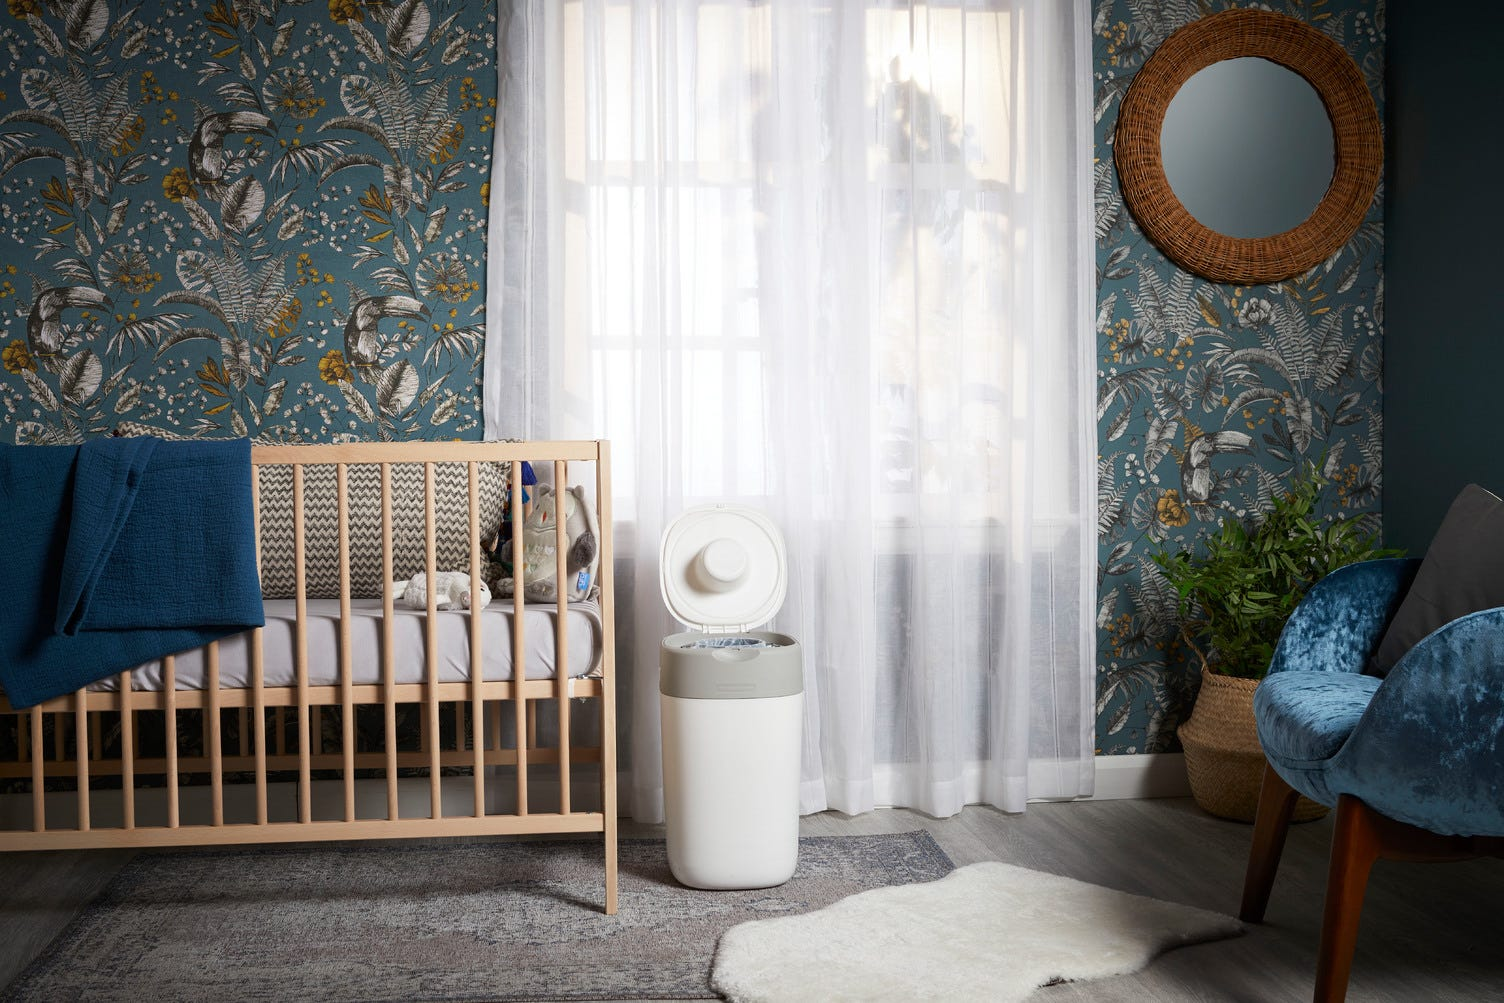 baby-nursery-decoration-with-white-twist-and-click-in-front-of-window